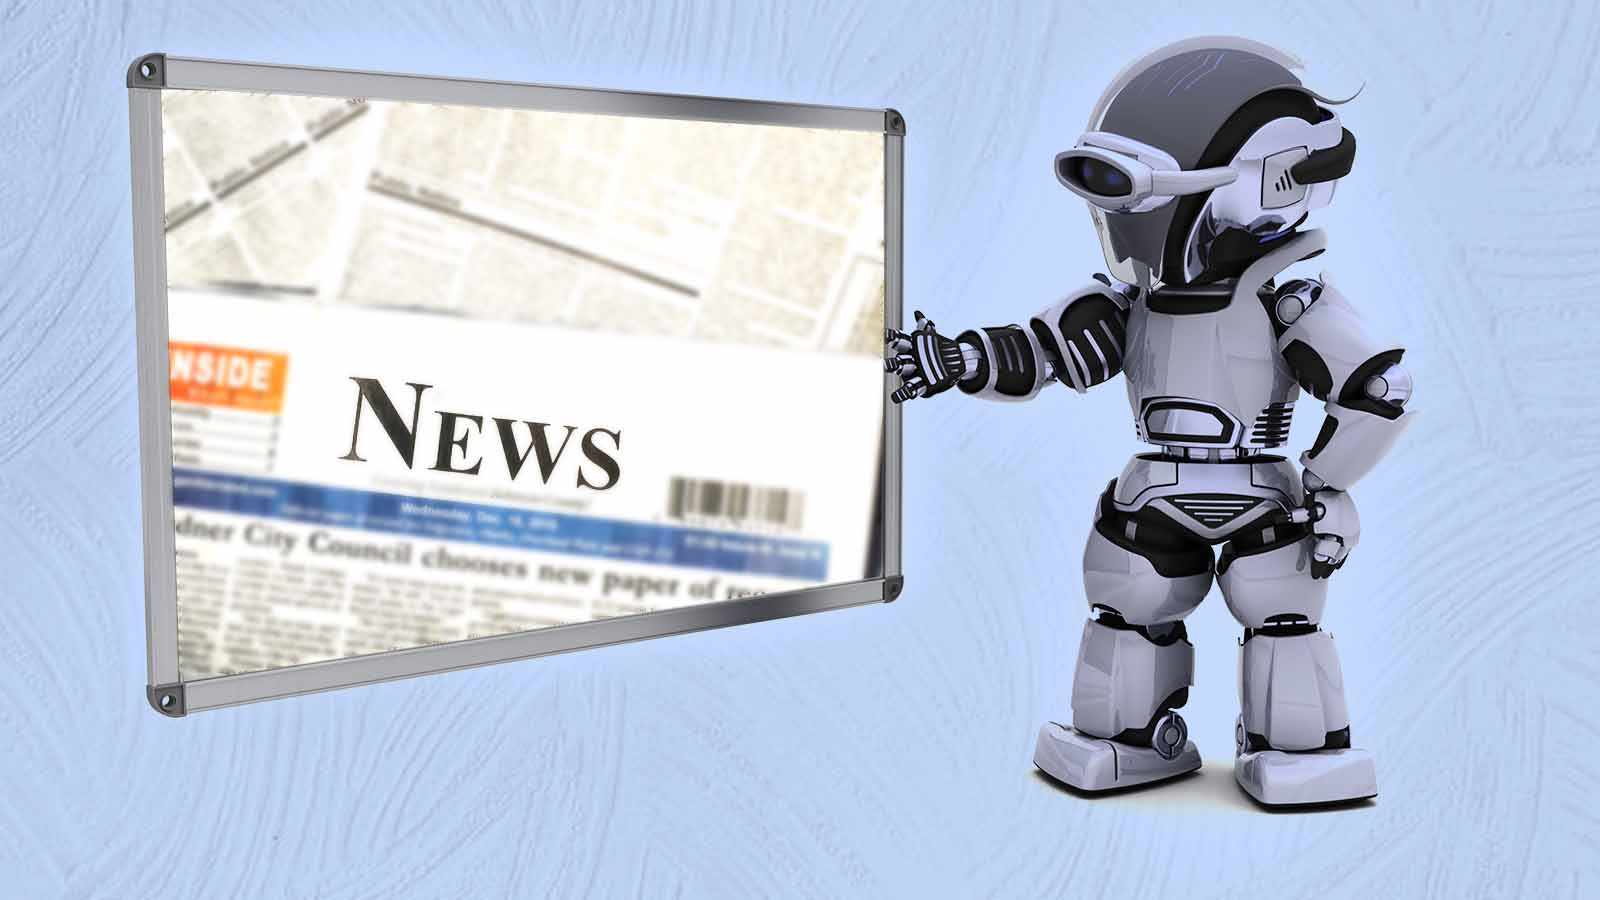 When Should Newsrooms Use Artificial Intelligence?